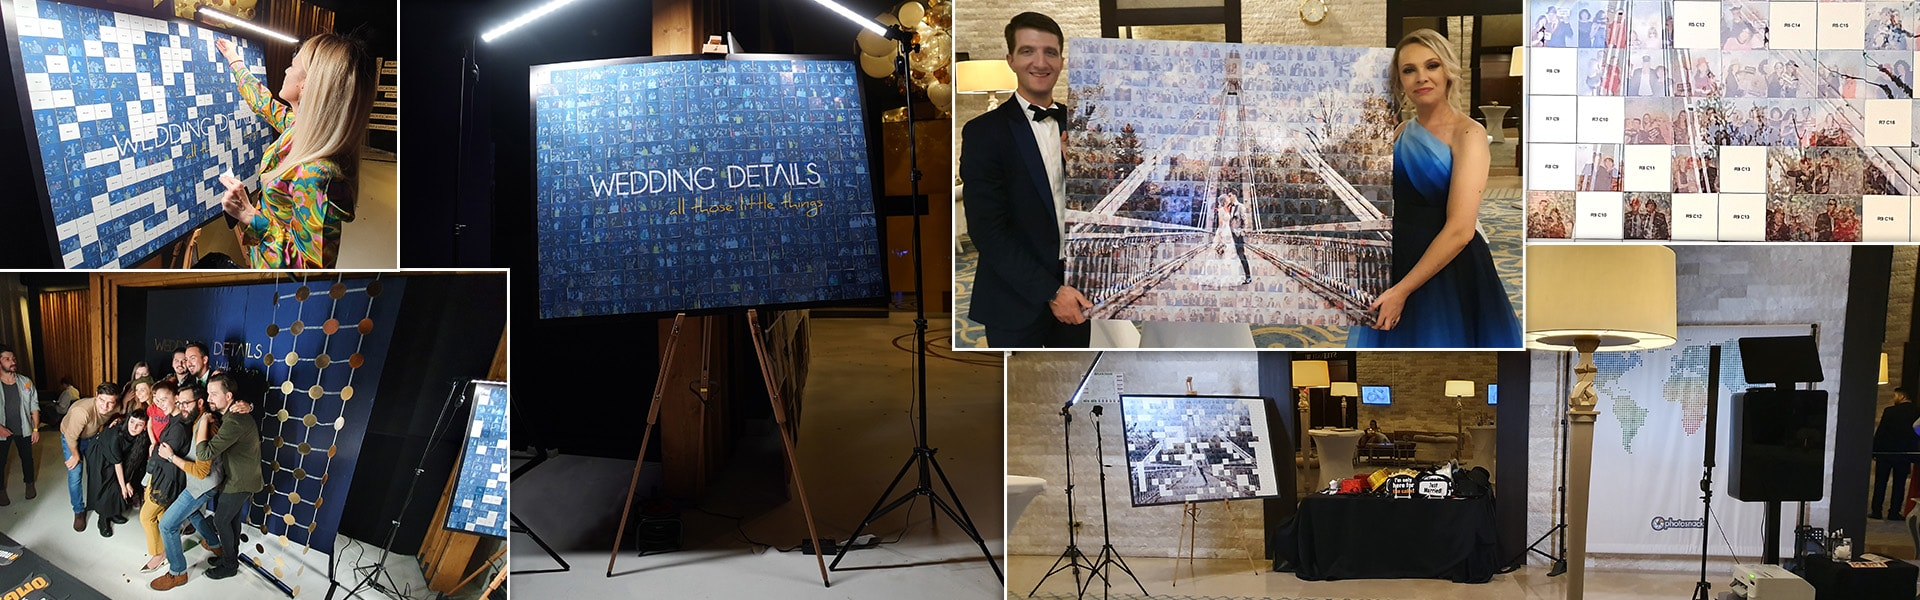 Mosaic Wall pentru photo booth la evenimente private si corporate